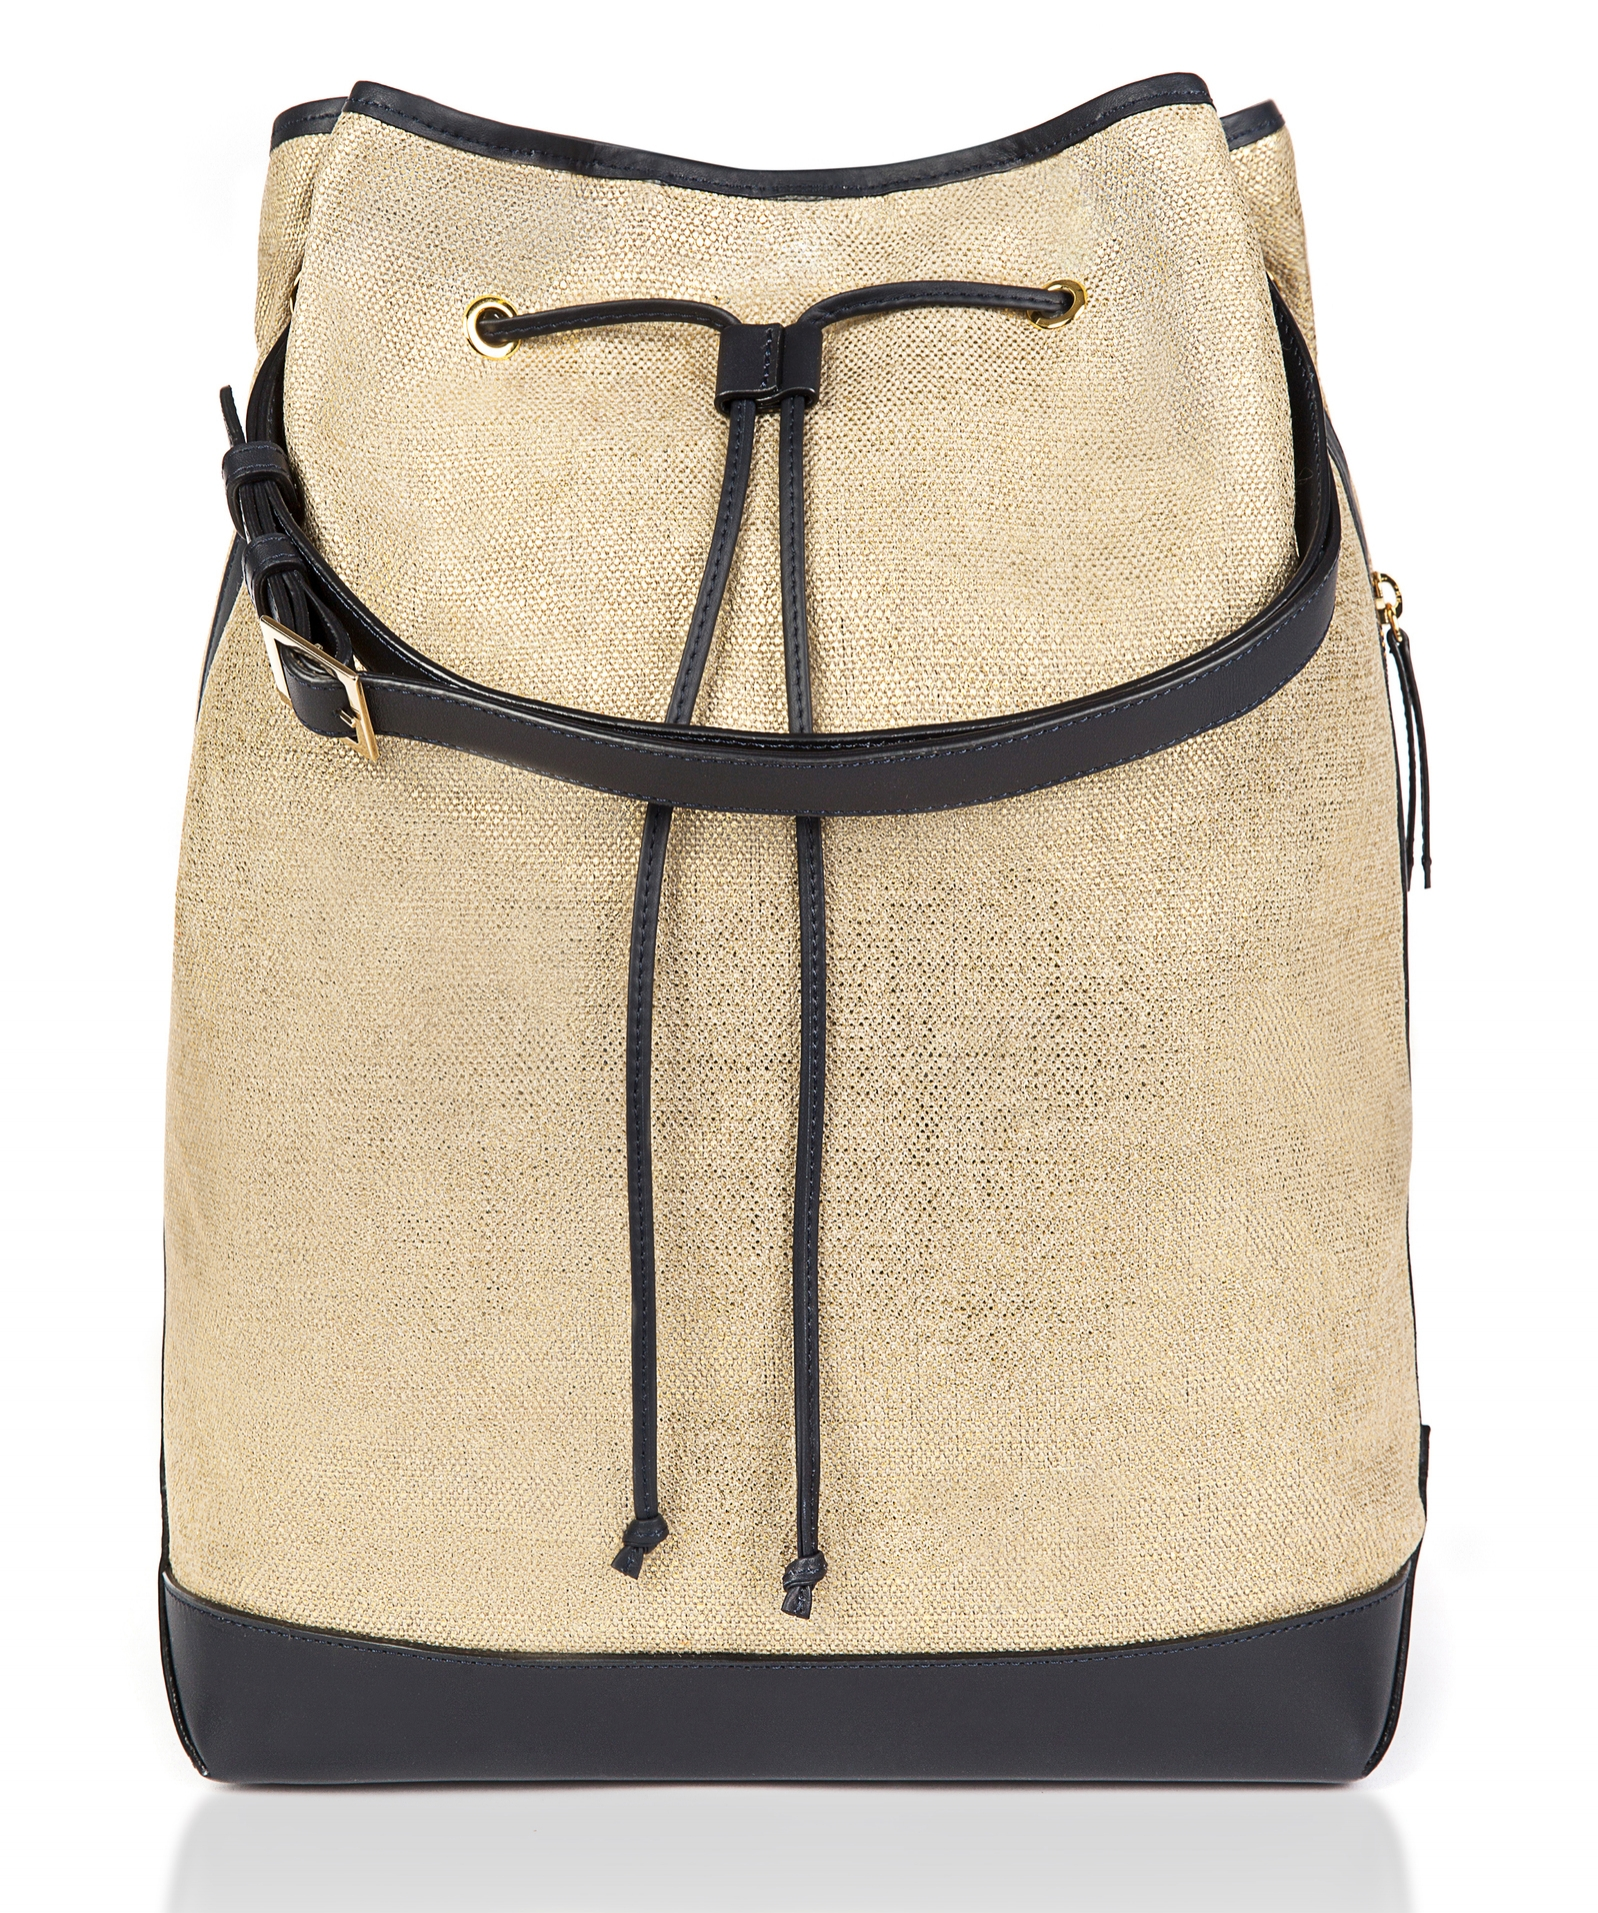 SCW Interiors Life Hacks Blog Post : My Holiday Wish List that includes this Montunas canvas backpack